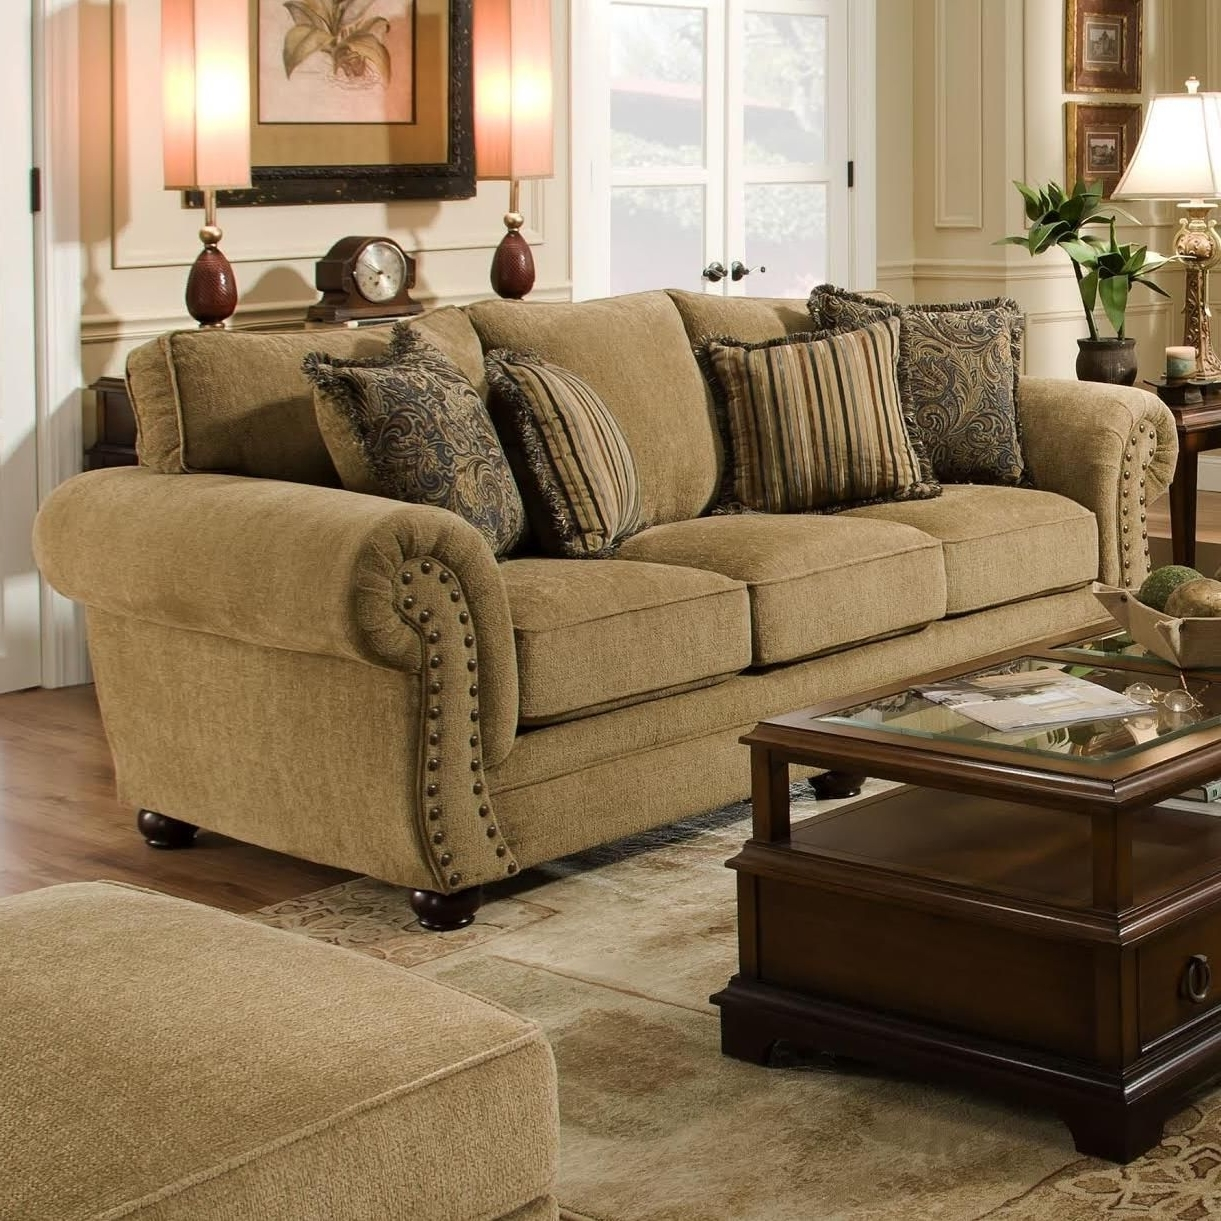 Miskelly Furniture Pertaining To Jackson Ms Sectional Sofas (View 13 of 20)